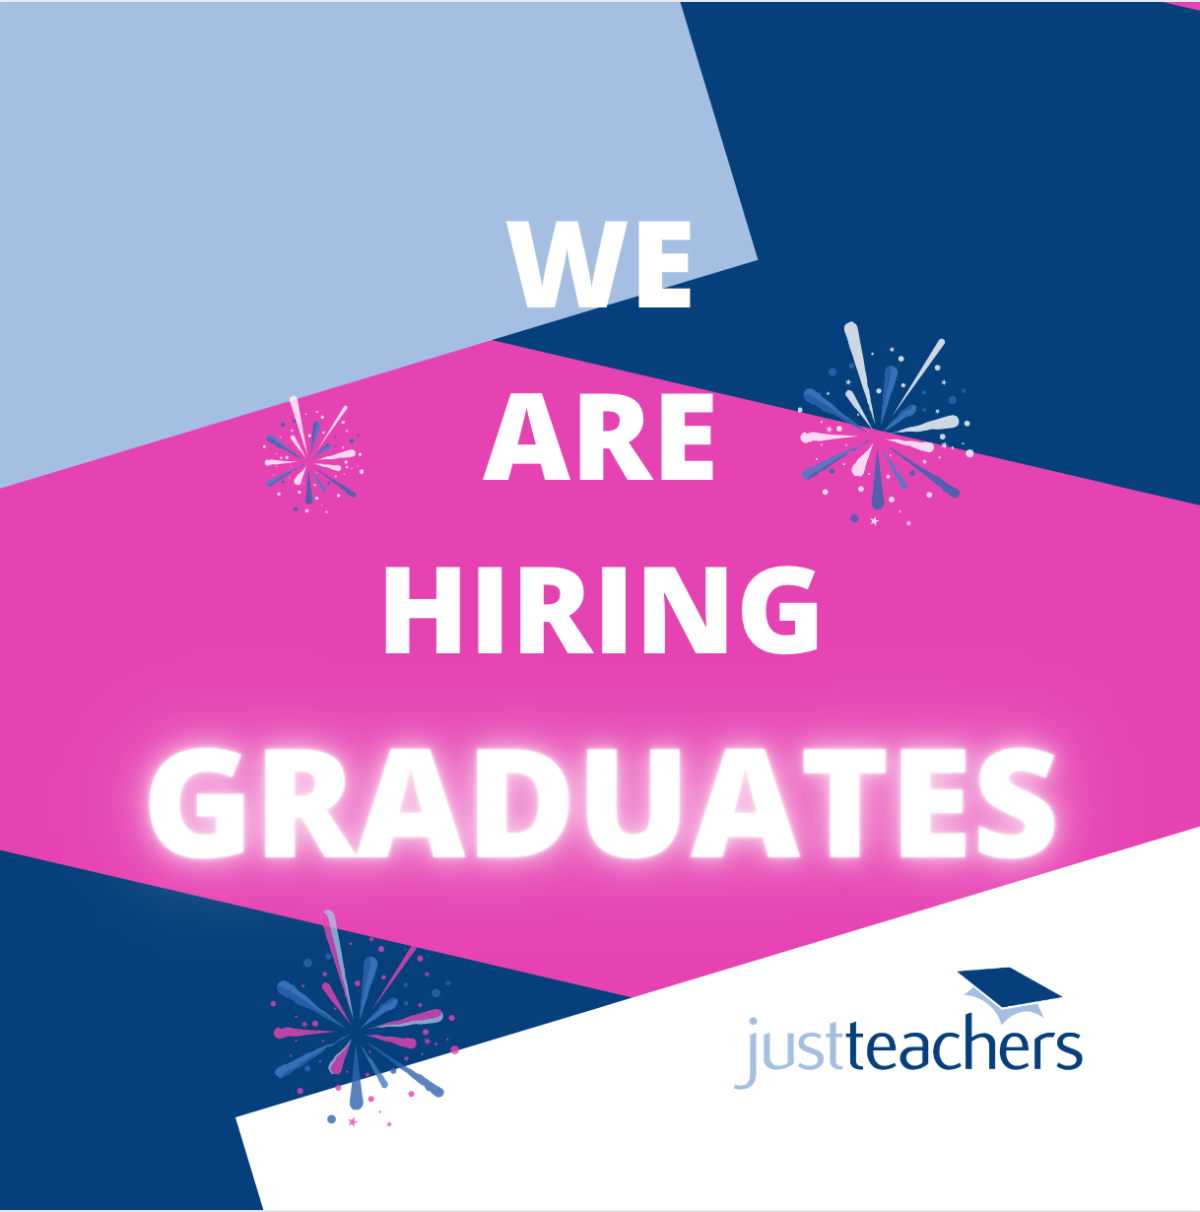 Excited to be recruiting Graduates across all offices